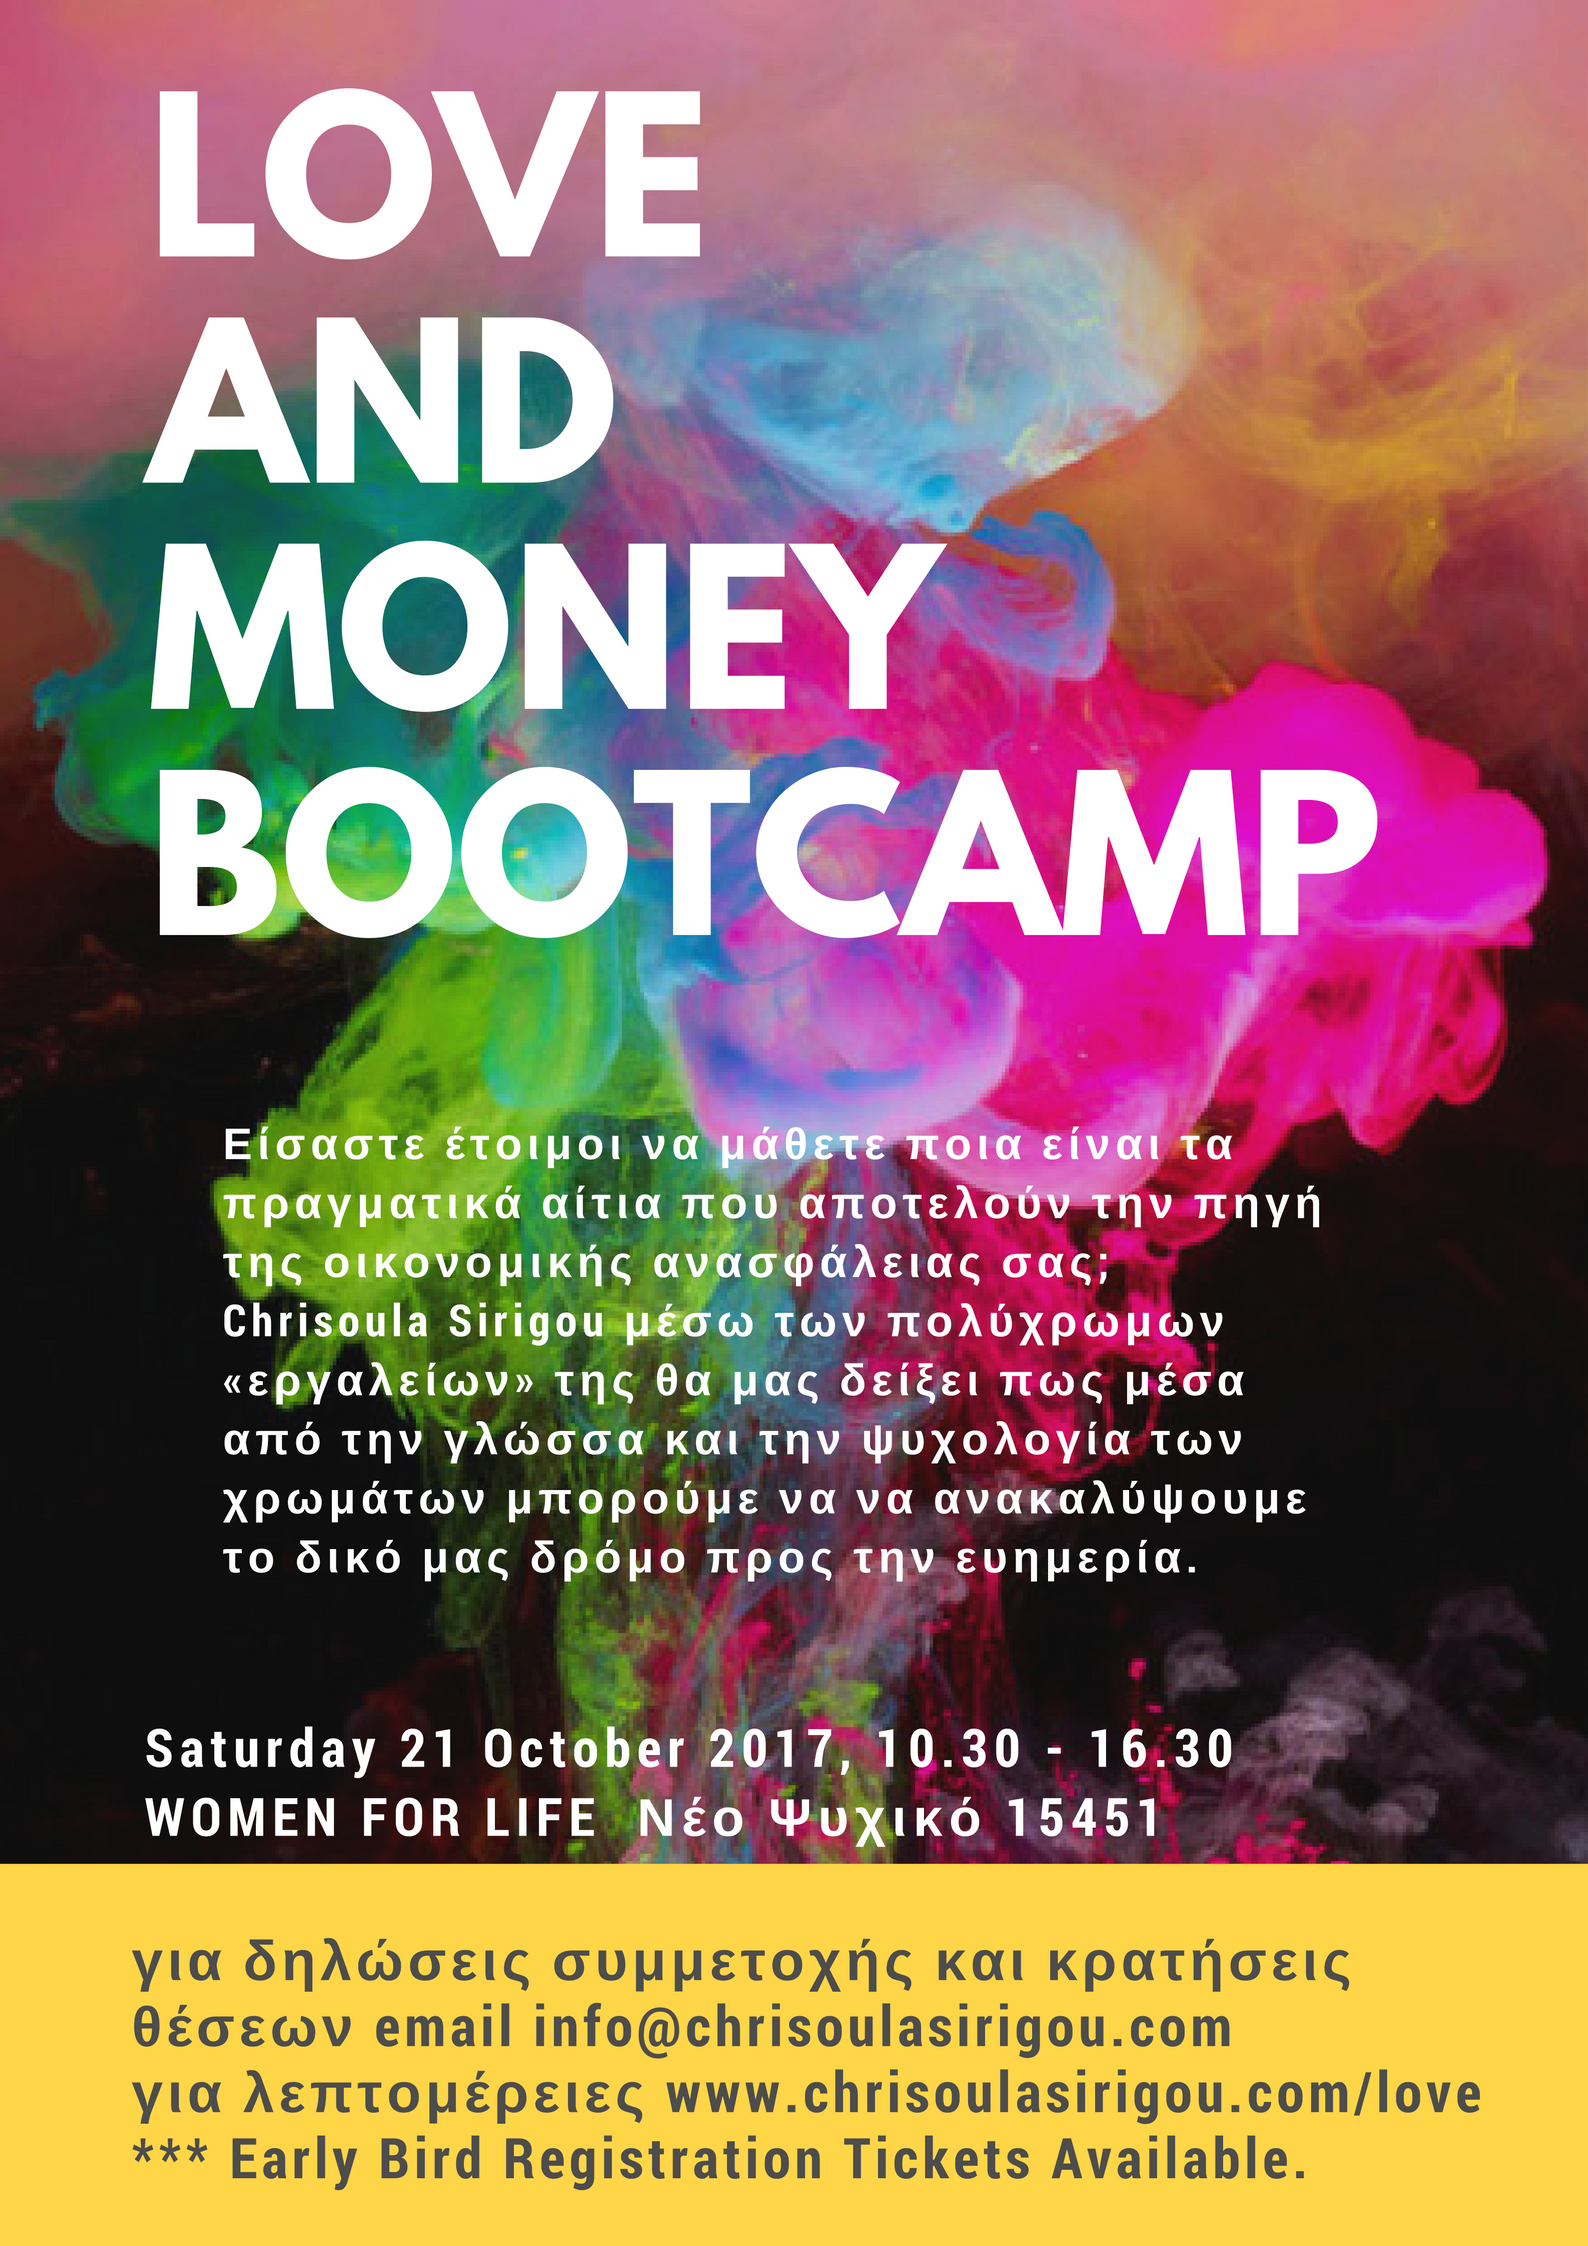 love and money bootcamp in Greek